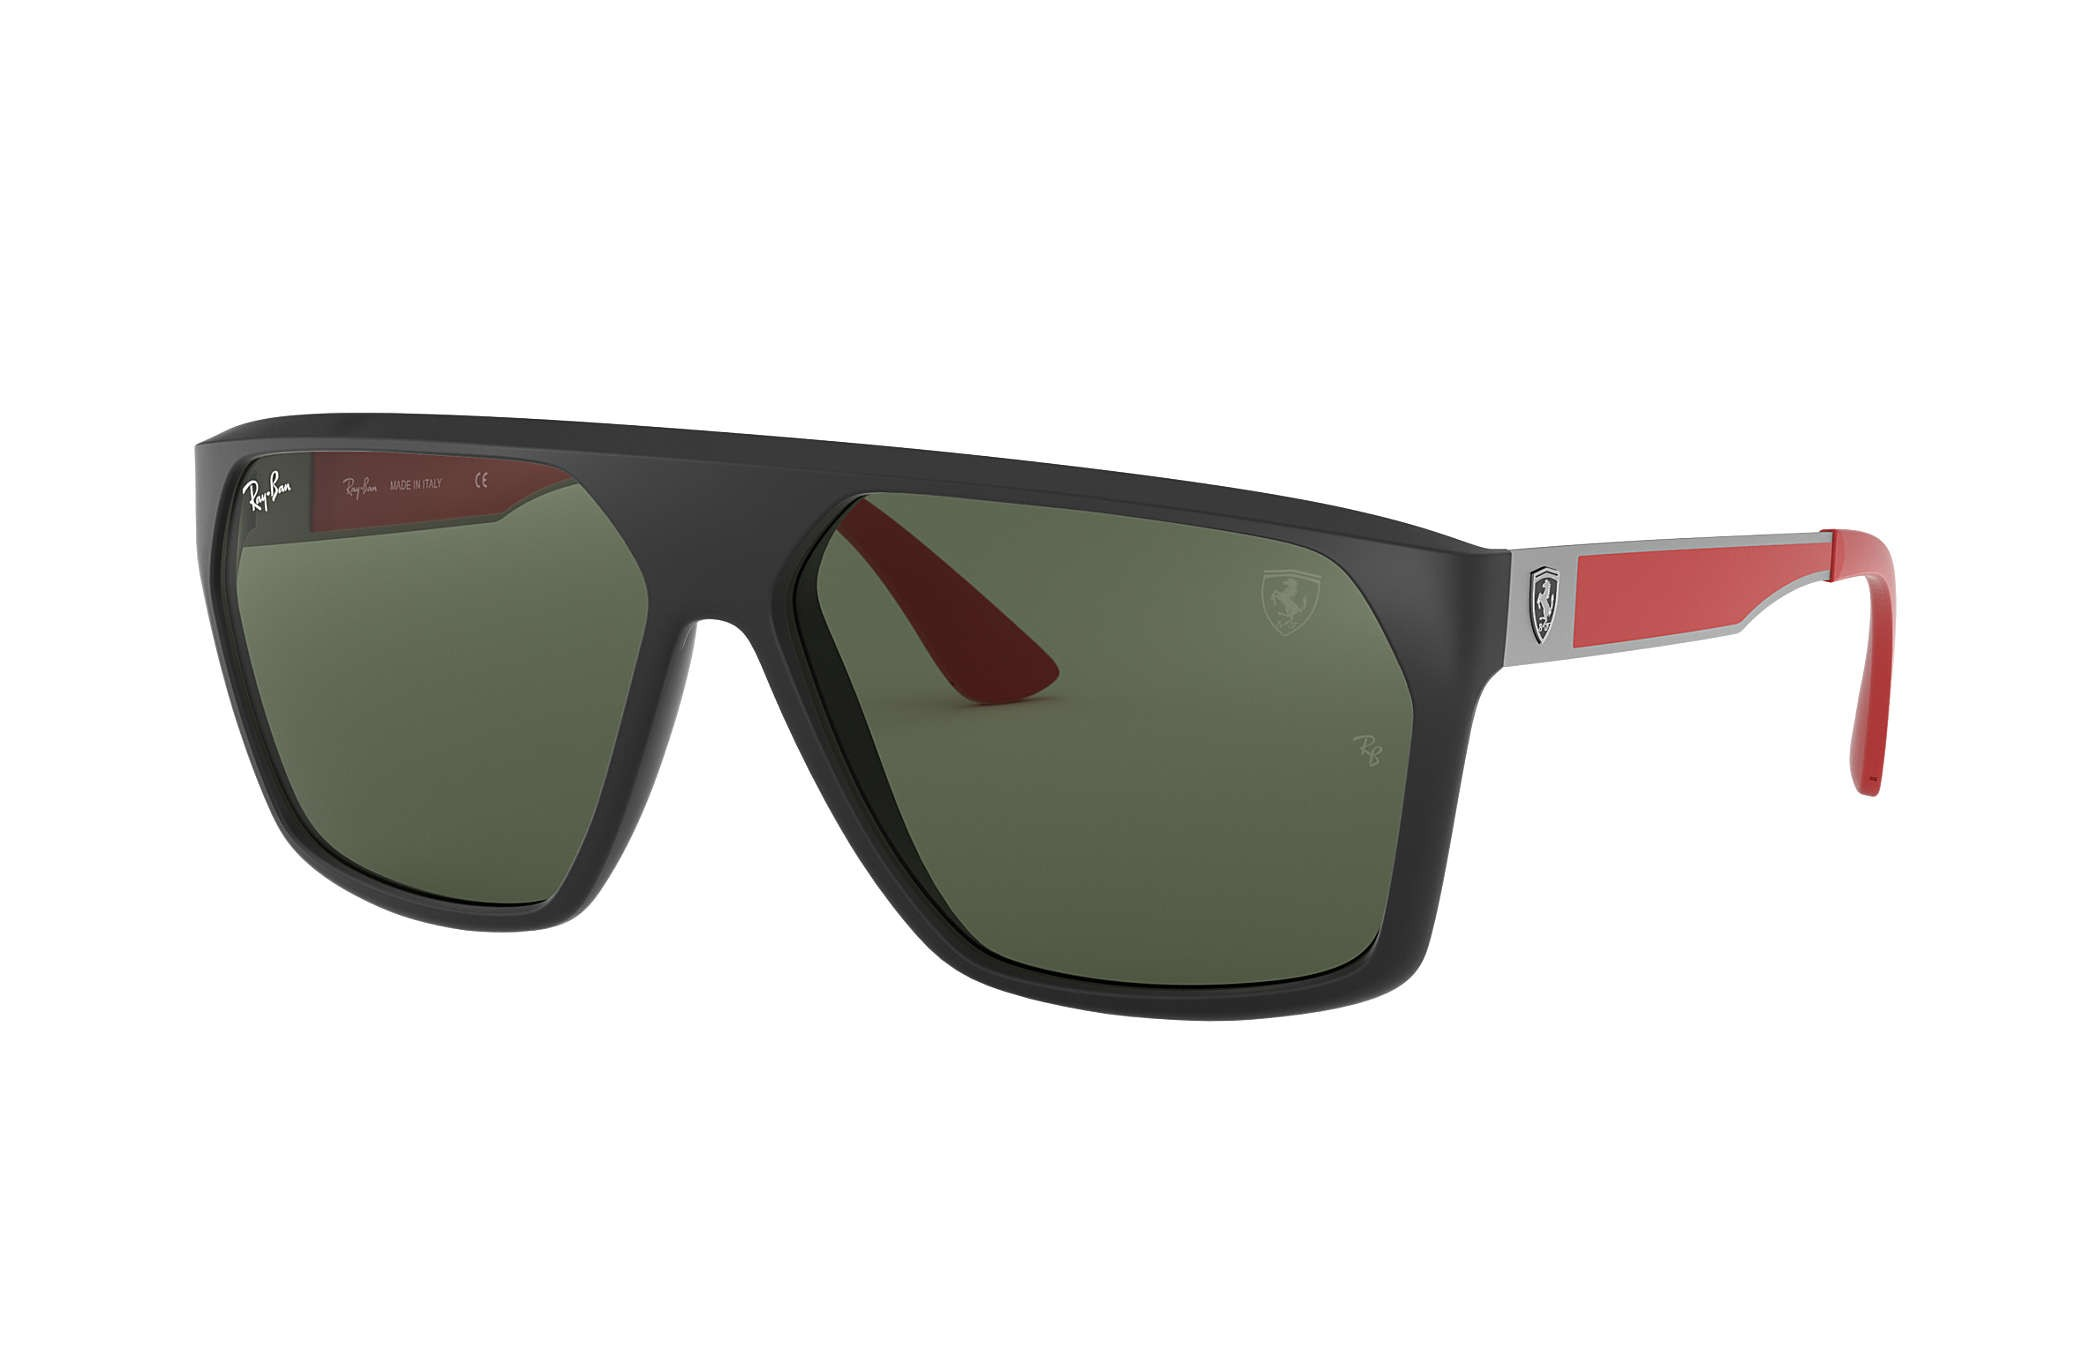 eccf171f31 Ray Ban 0RB4309M F60271 SCUDERIA FERRARI COLLECTION Black Gunmetal Red -  Green